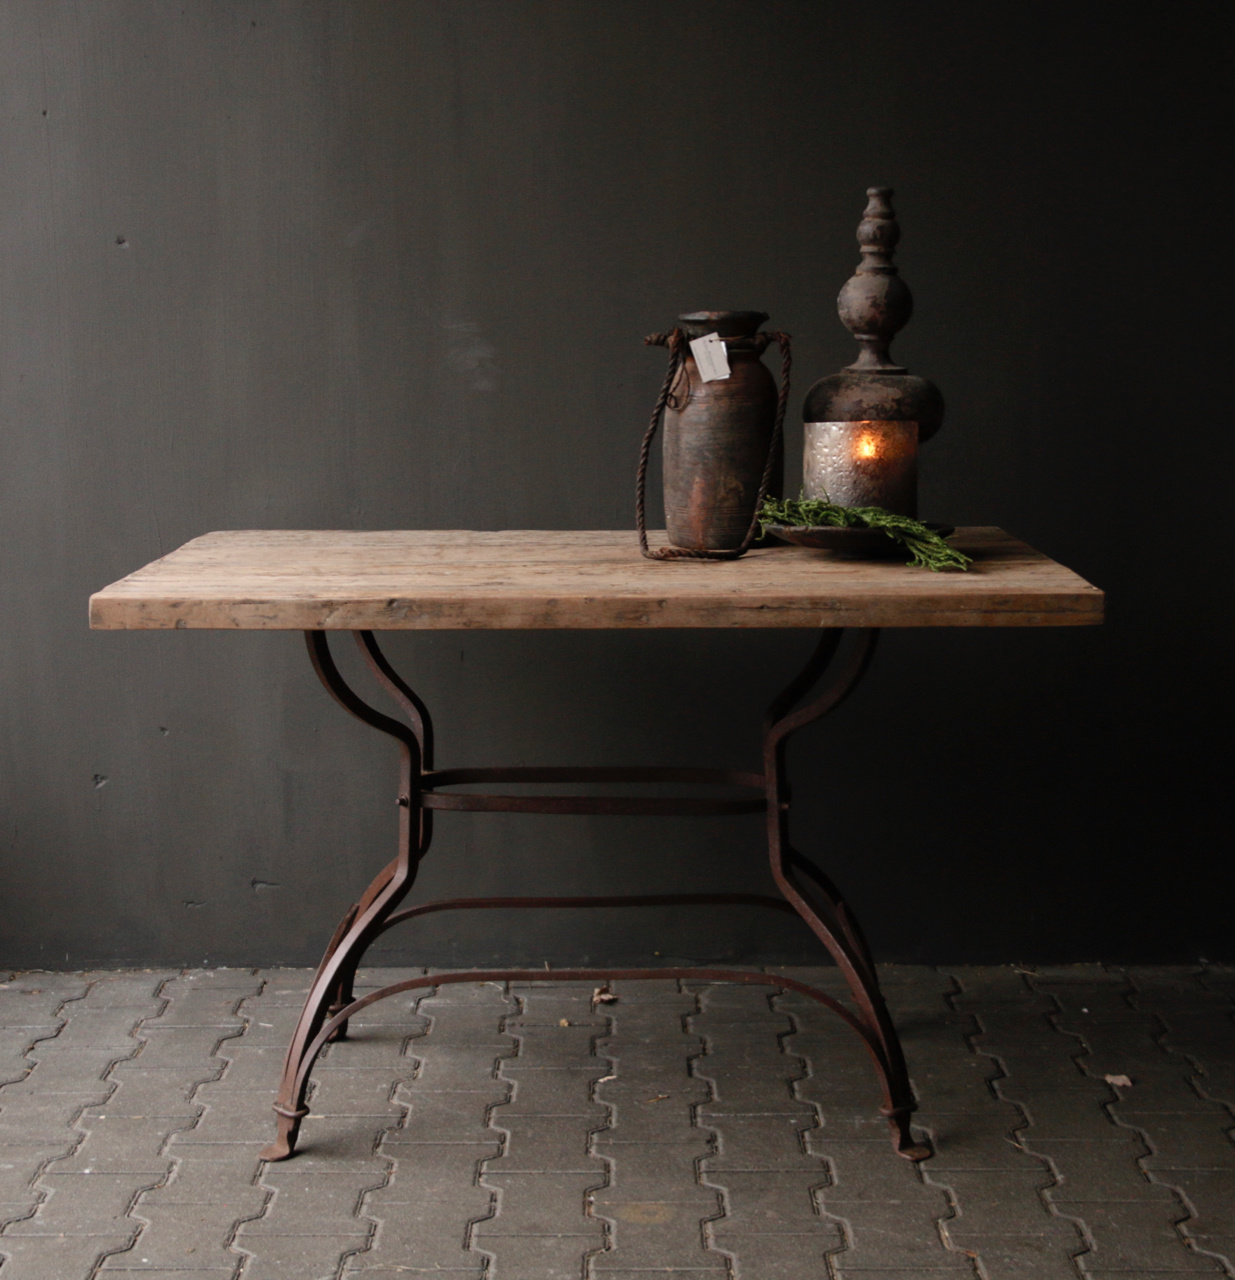 Loose old wooden table top-3